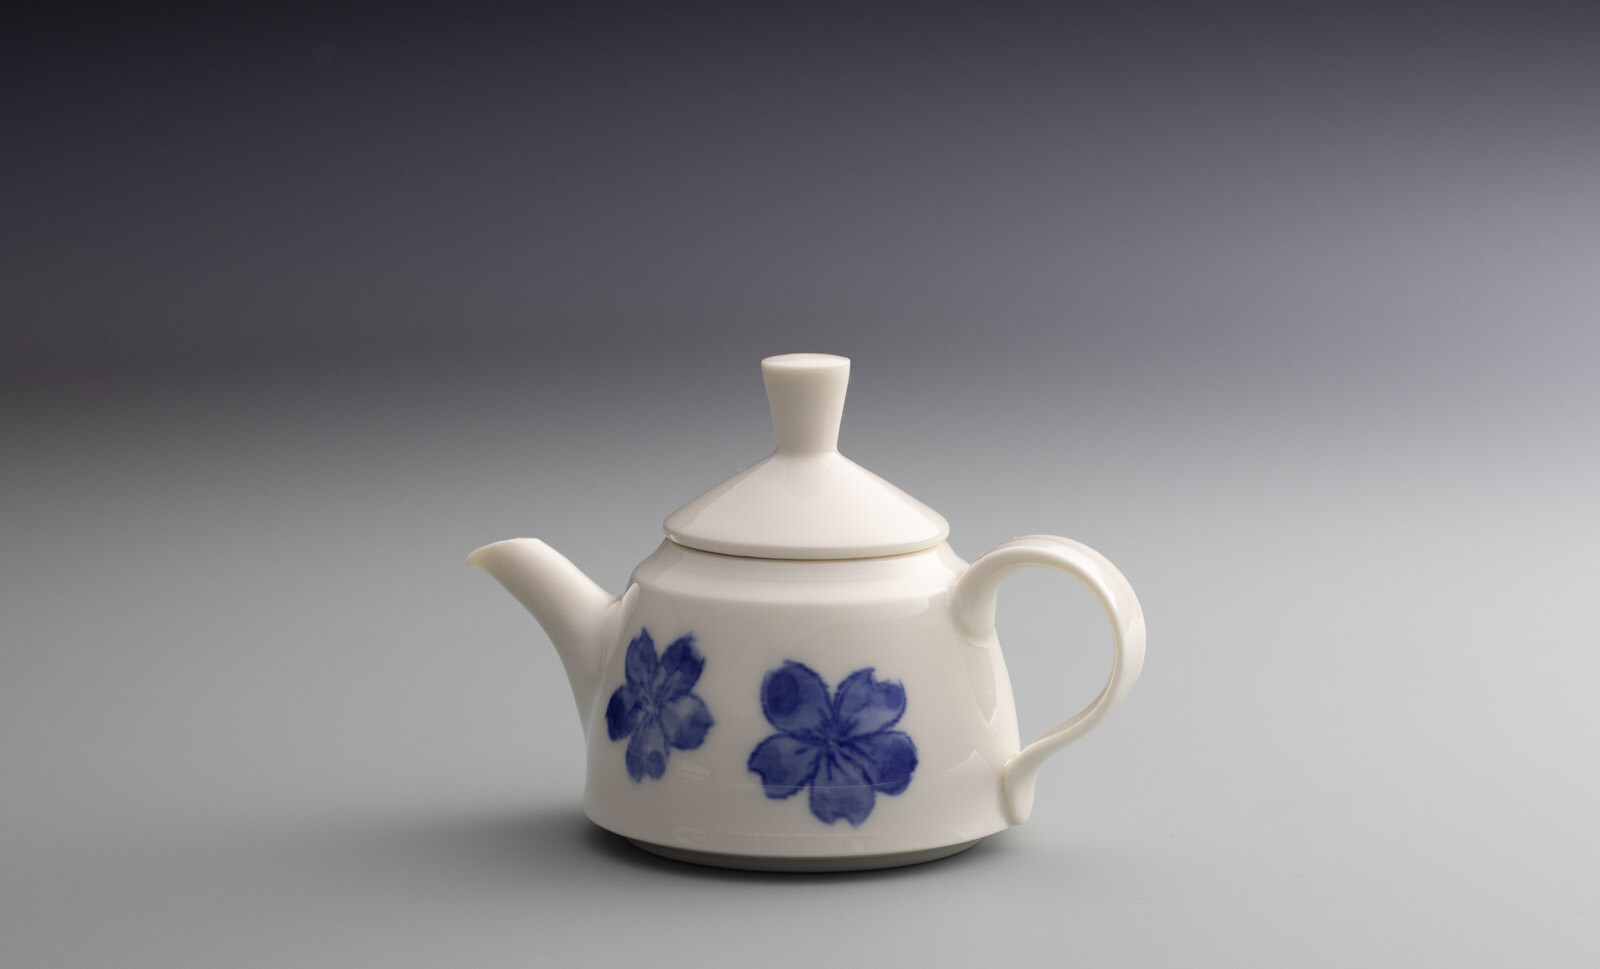 140ml porcelain teapot